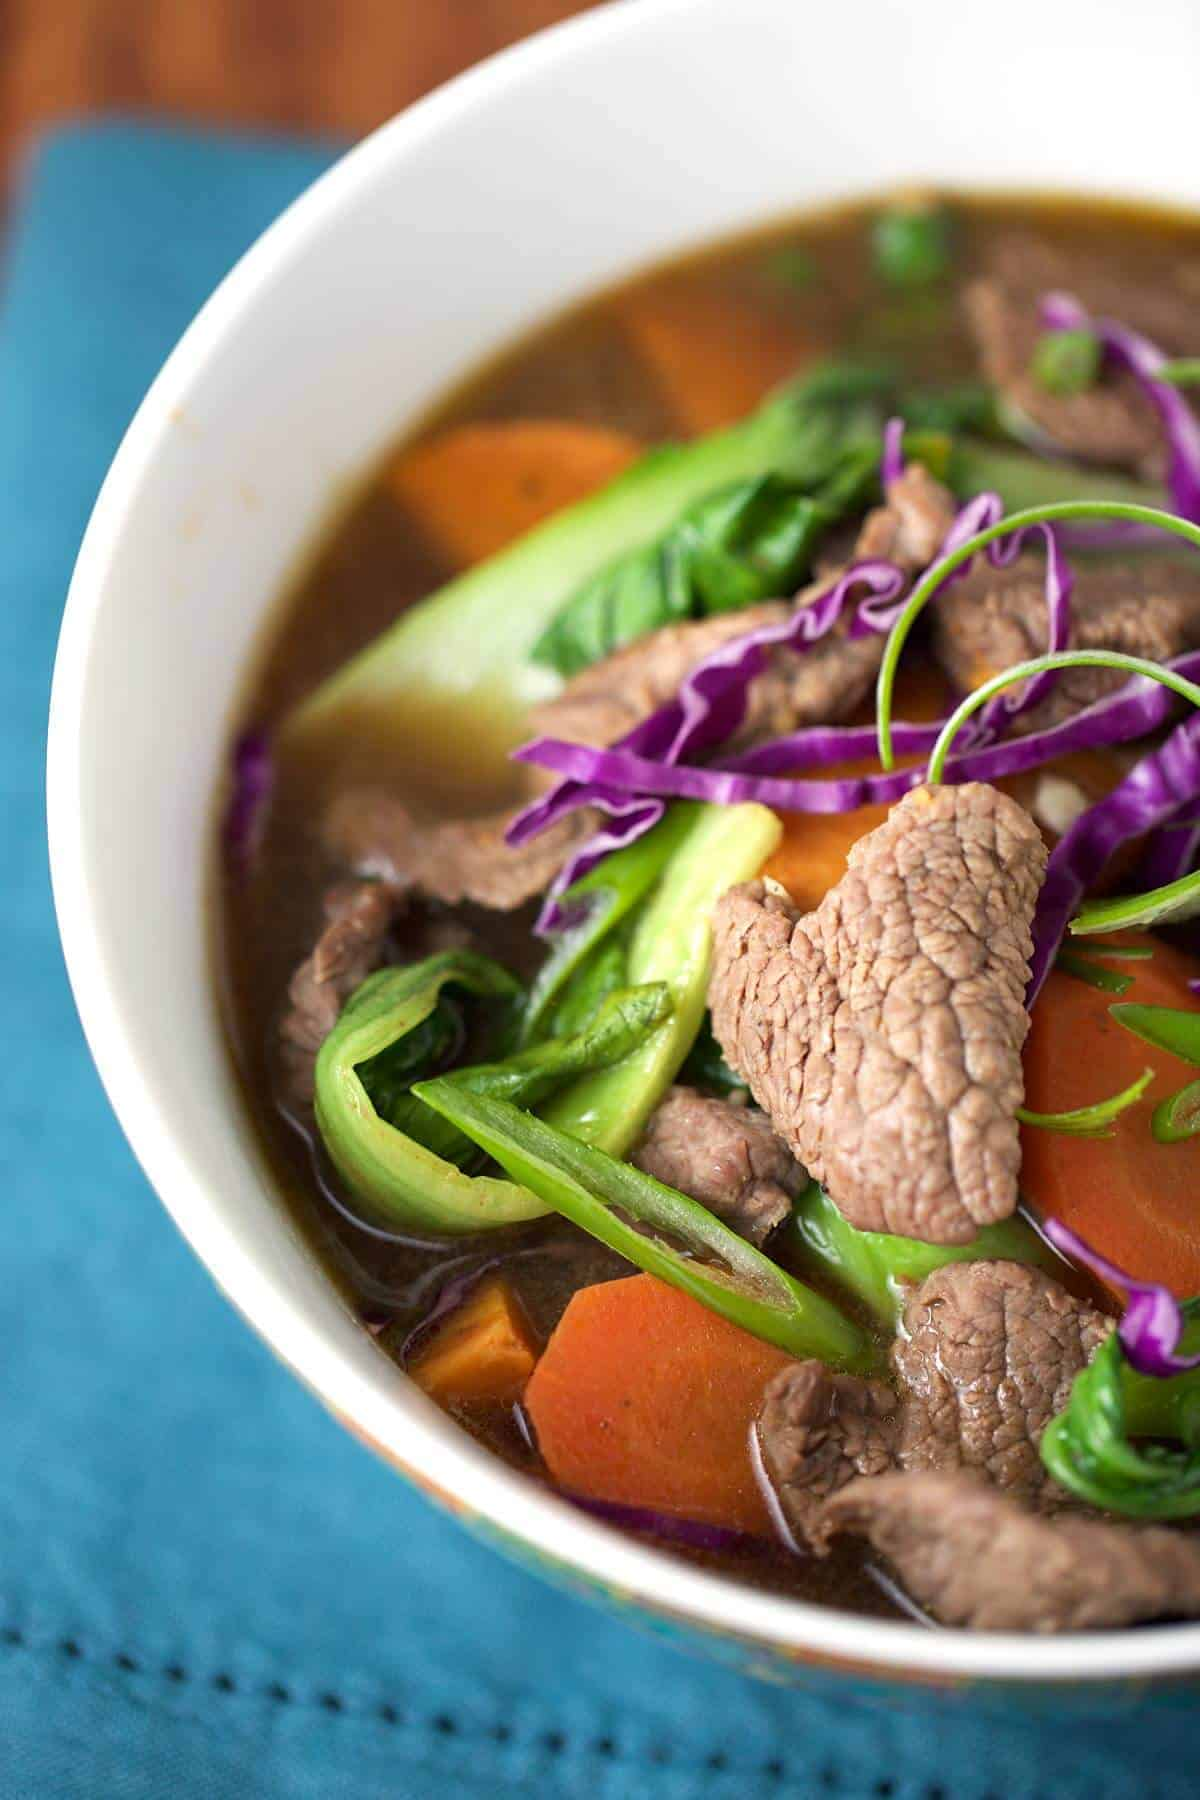 Chinese Five Spice Beef Soup with Bok Choy - a flavor-packed recipe with carrots, sweet potato, bok choy and red cabbage make this soup healthy and filling! | jessicagavin.com